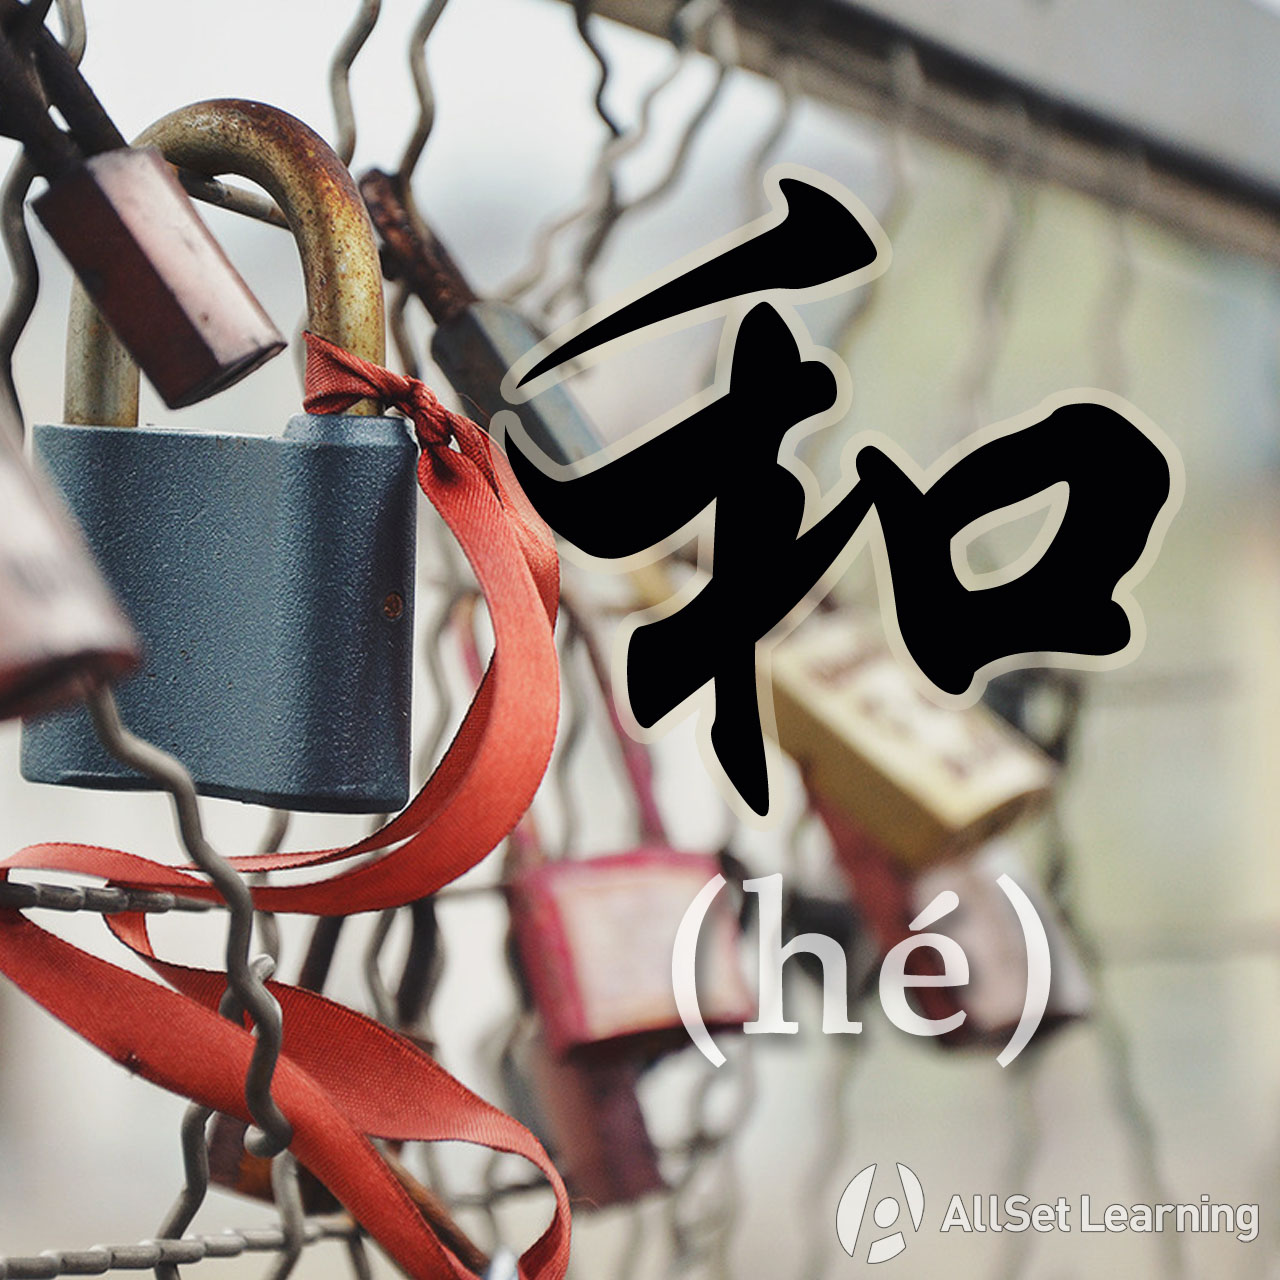 Expressing And With He Chinese Grammar Wiki This page is about the various possible meanings of the acronym, abbreviation, shorthand or slang term: chinese grammar wiki